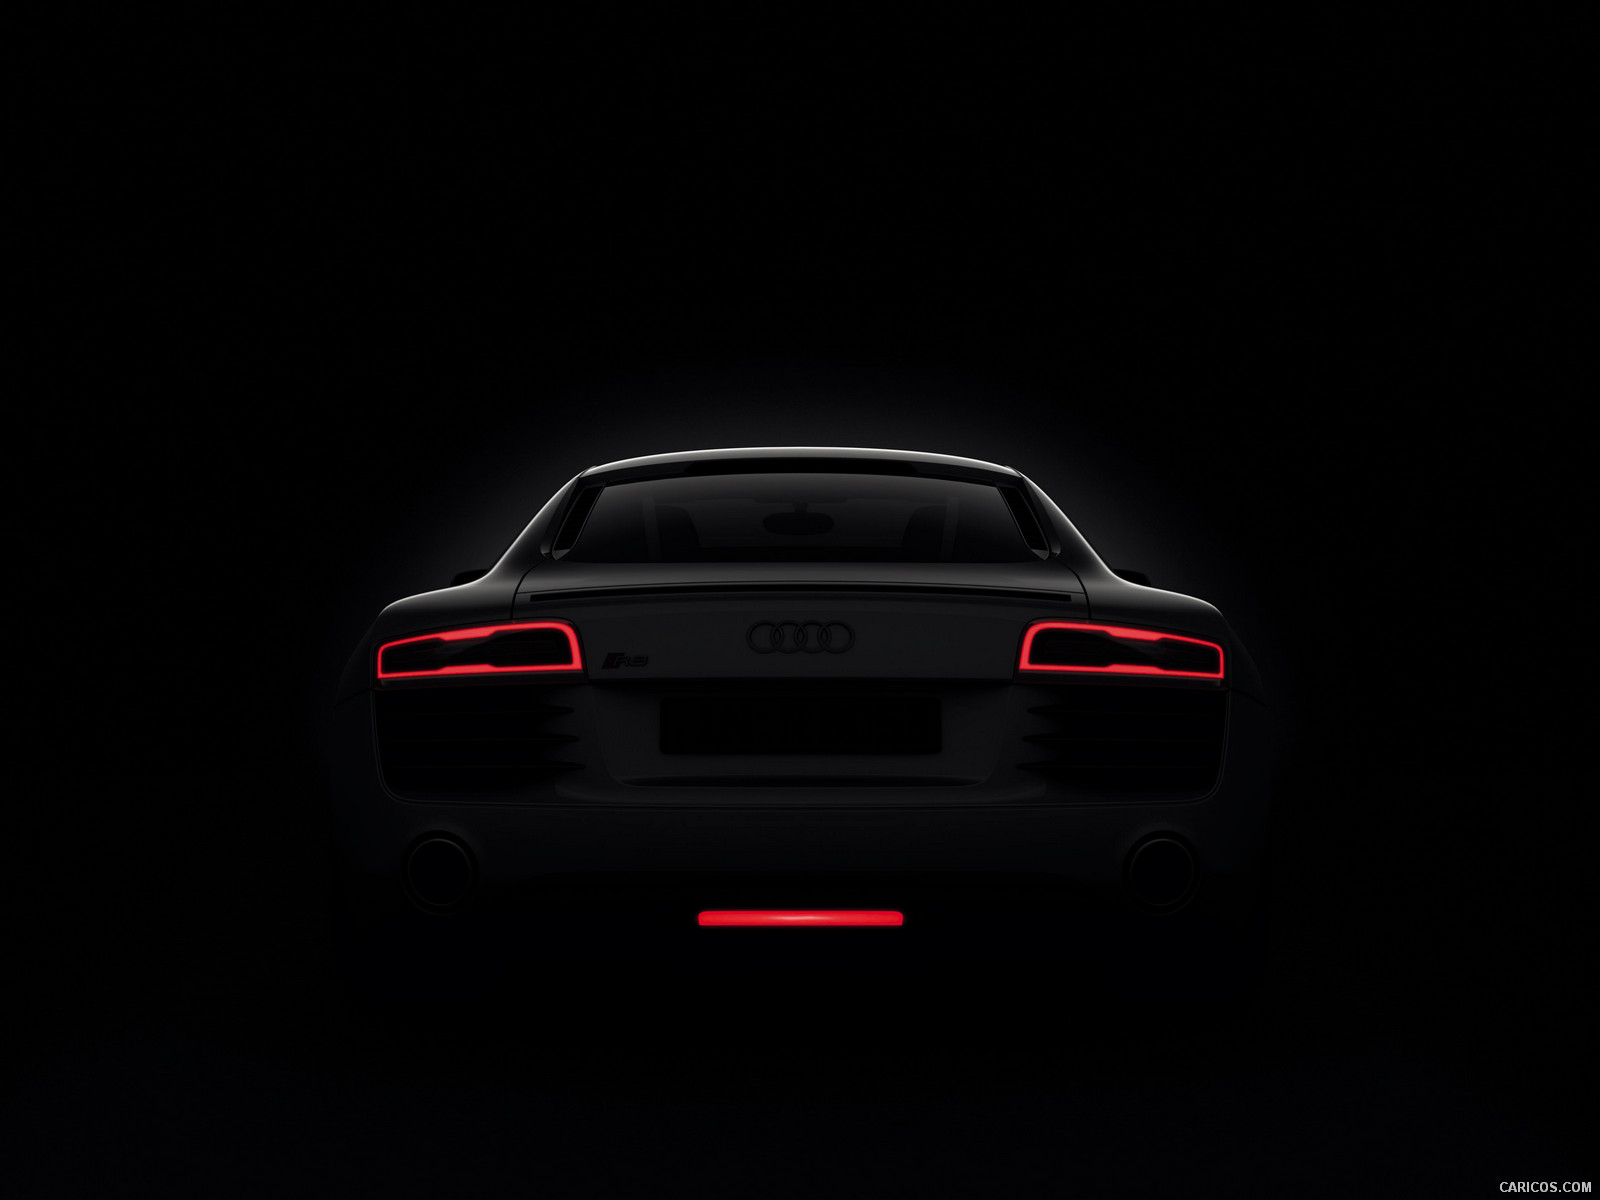 2013 Audi R8 LED Tail Lights - Wallpaper